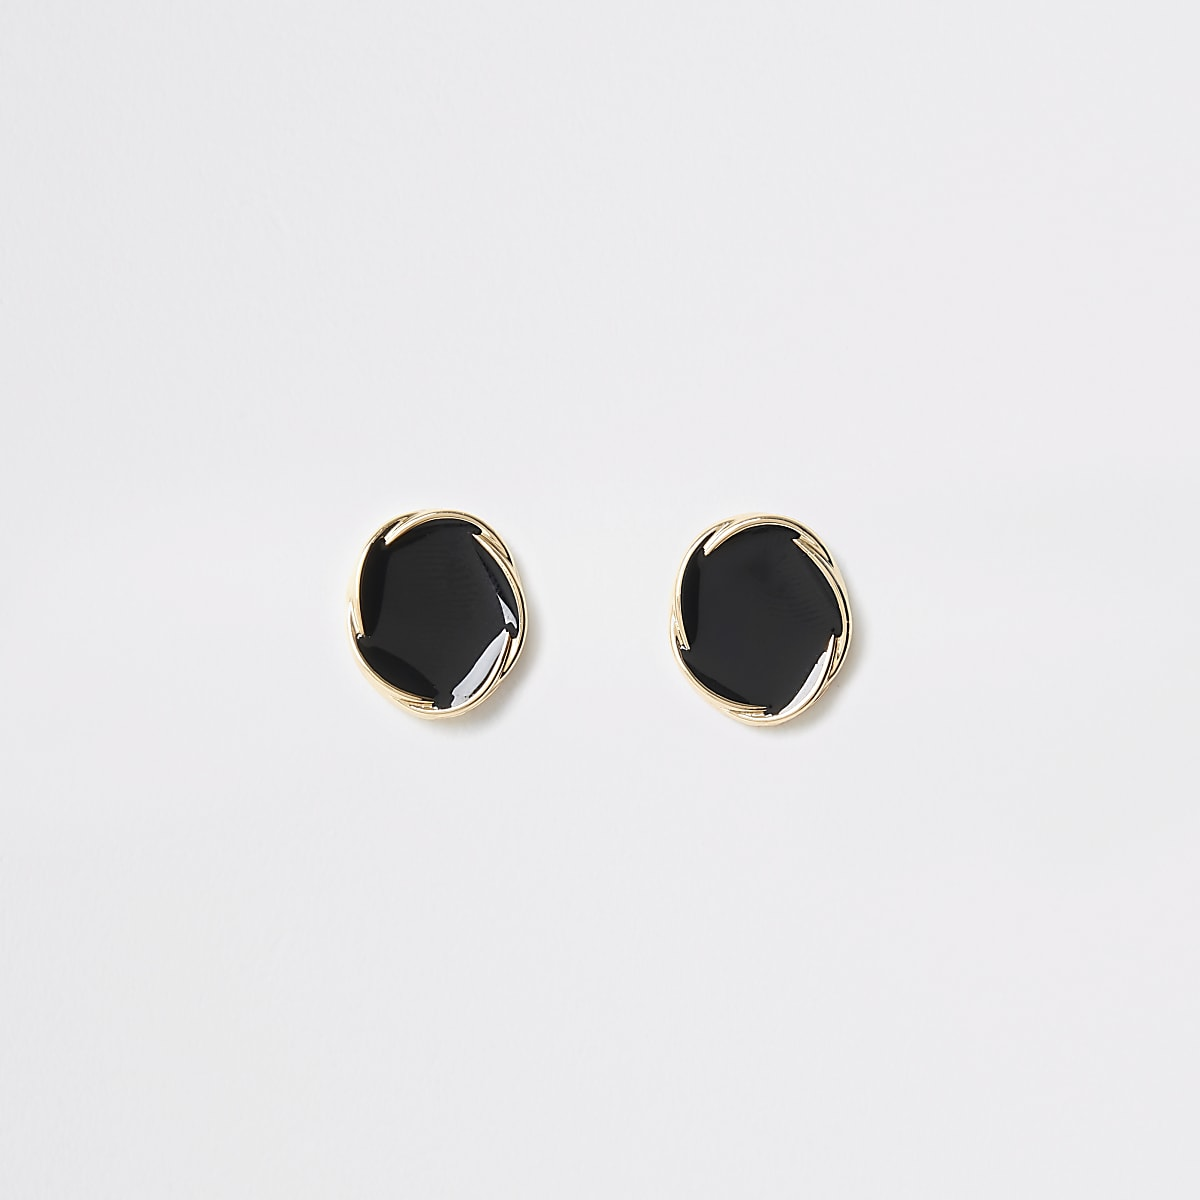 Gold color twist stud earrings